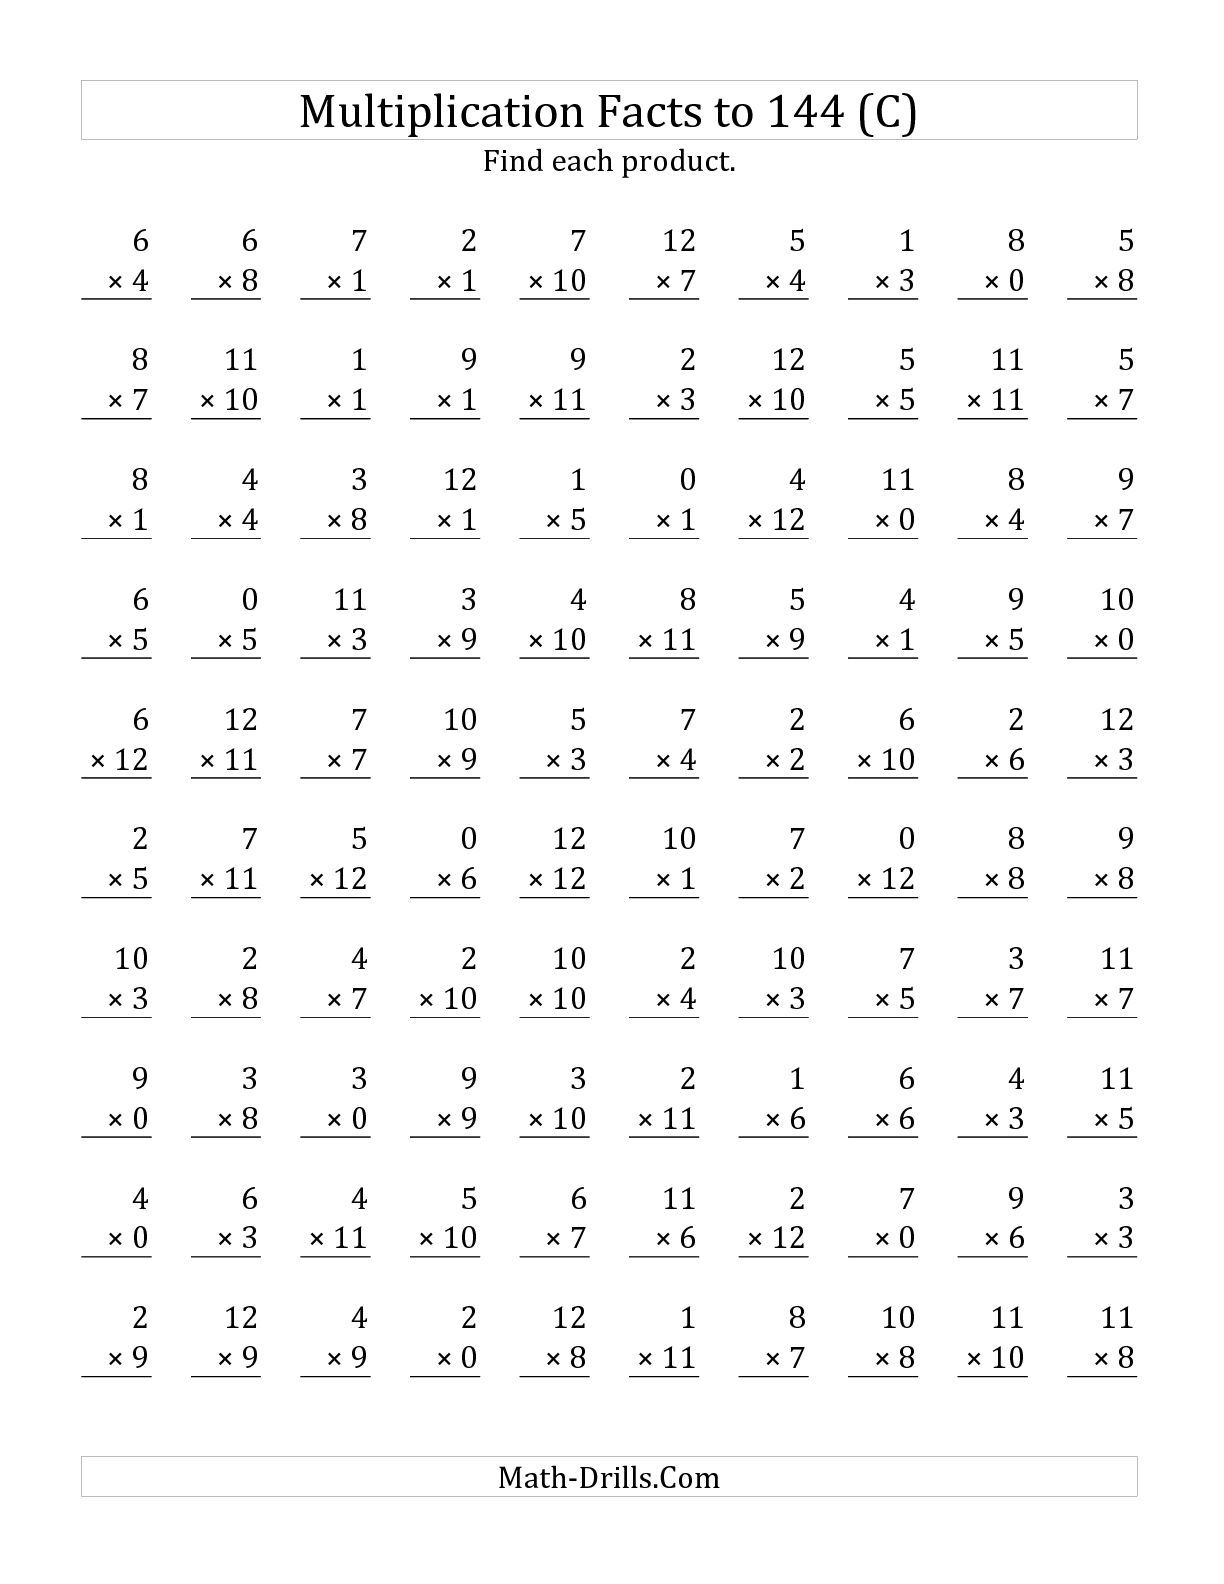 The Multiplication Facts To 144 Including Zeros (C) Math in Printable Multiplication Facts Test